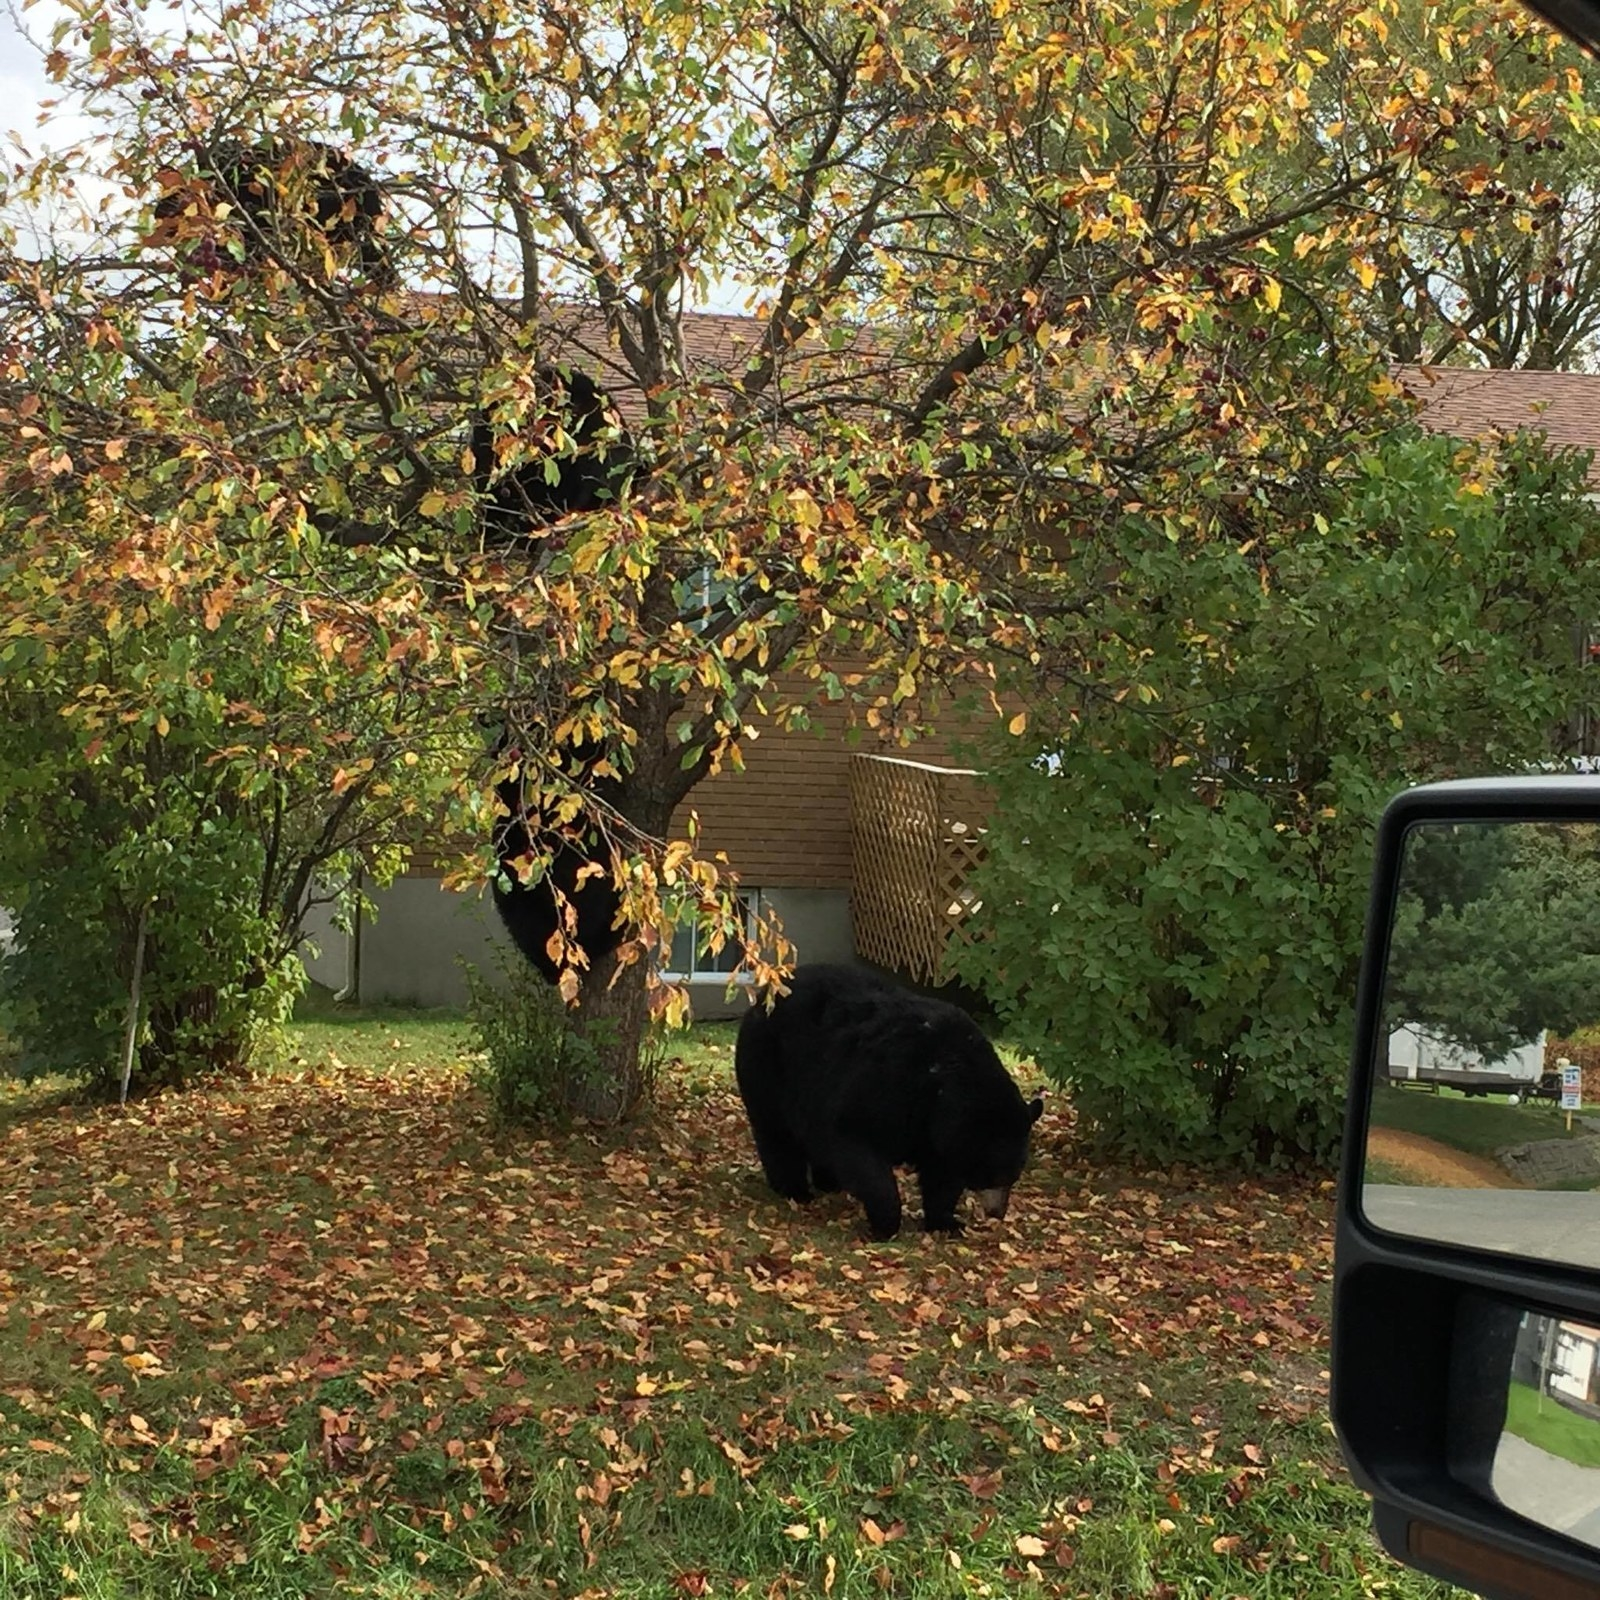 This Woman Saw A Whole Family Of Bears In The Same Tree